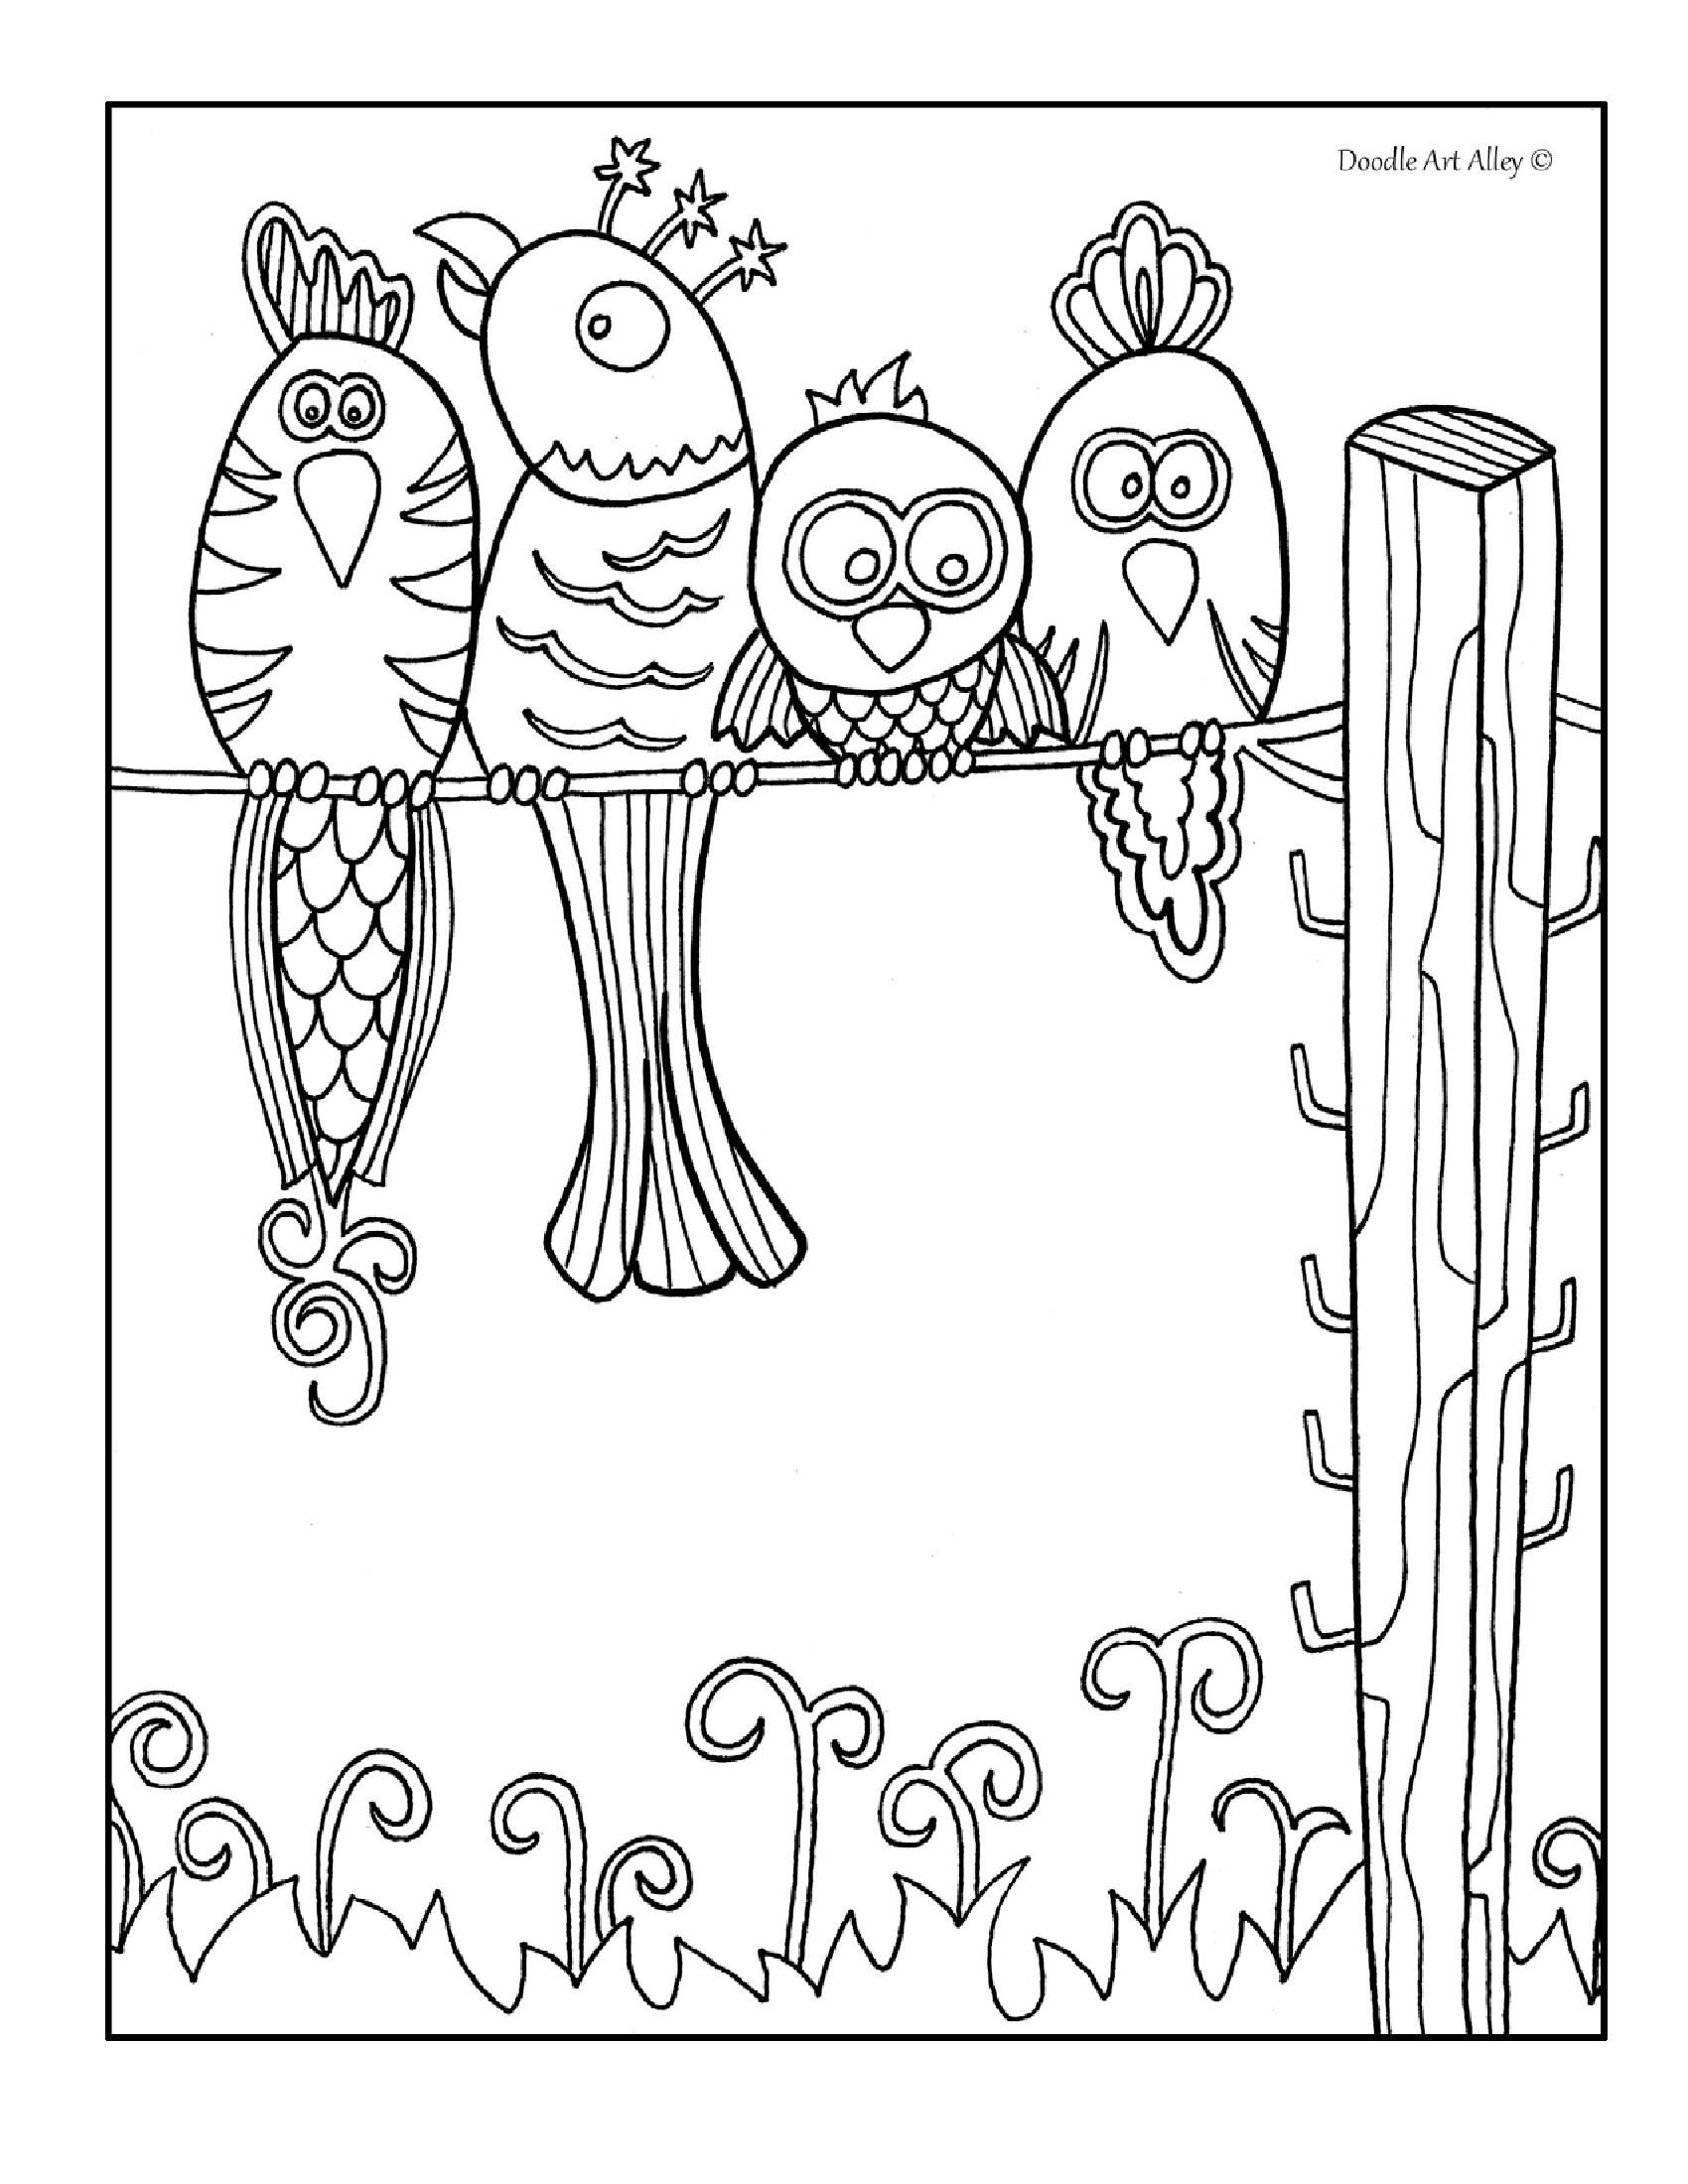 12 days of christmas coloring pages the 12 days of christmas coloring book scholastic parents coloring pages 12 days christmas of